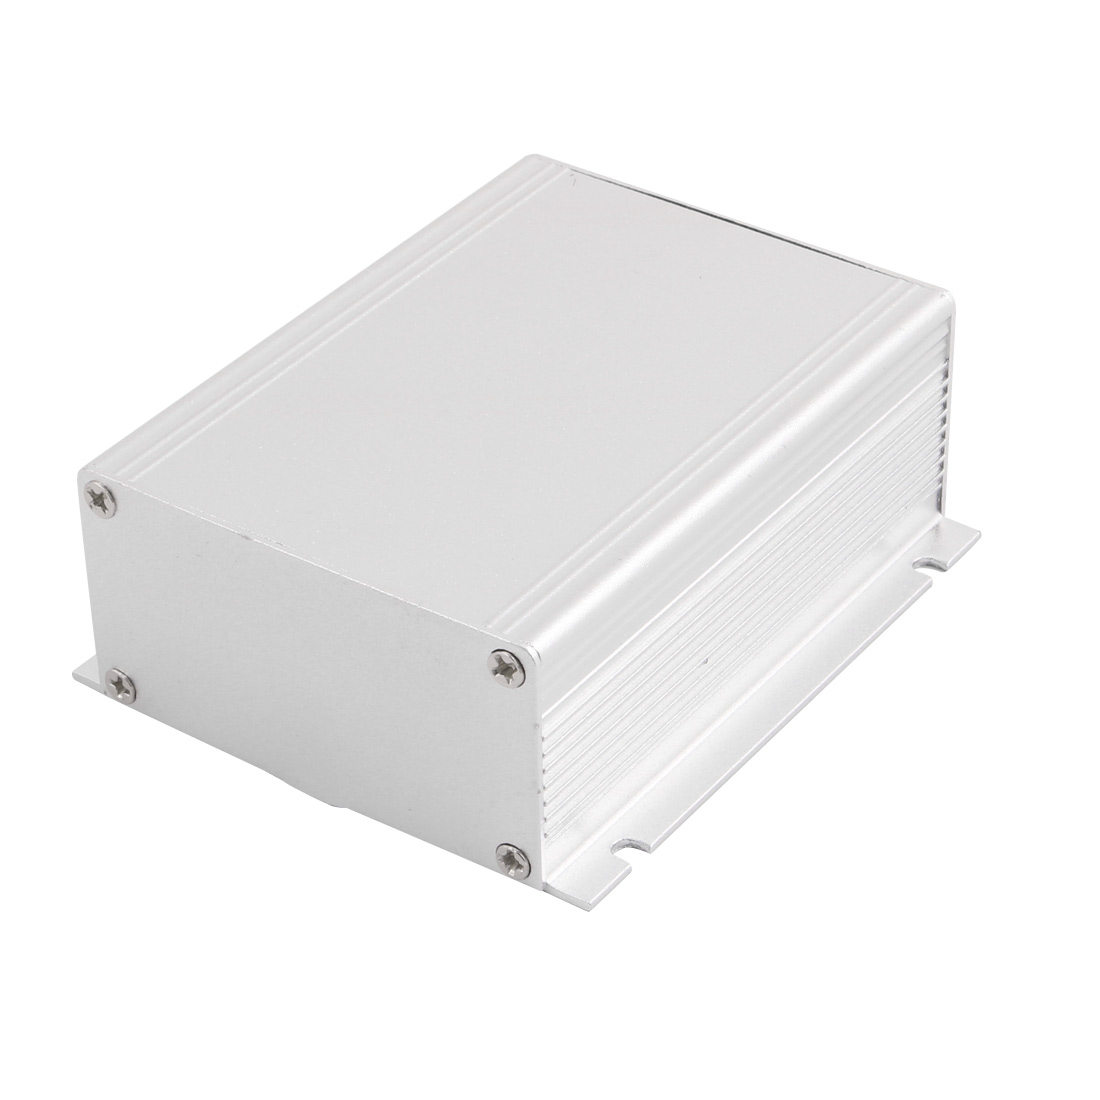 88mmx103mmx38mm Multi-purpose Electronic Extruded Aluminum Enclosure Box Silver